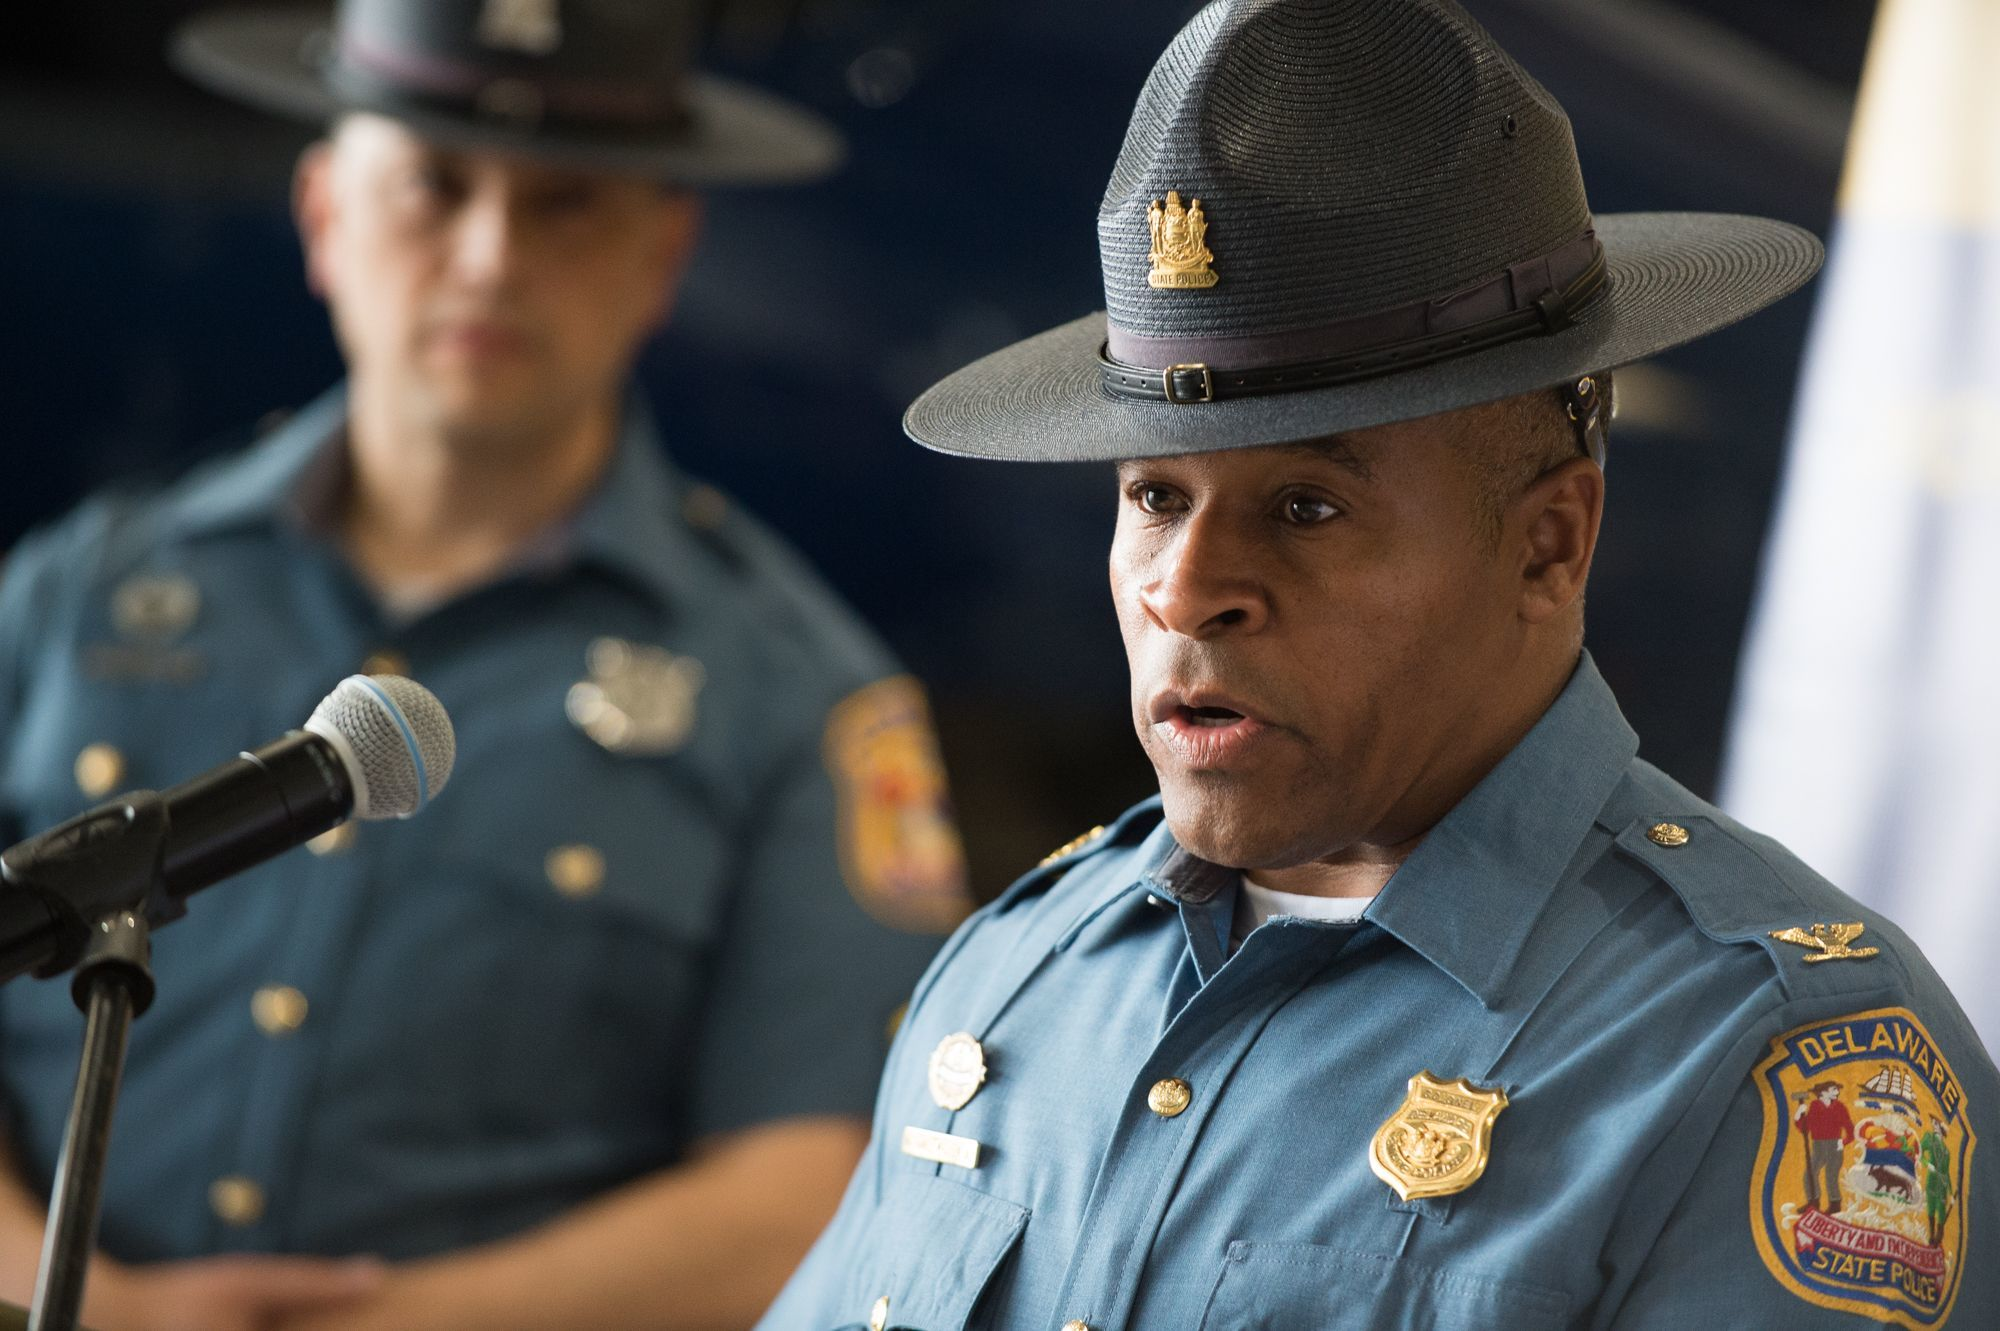 Colonel Nathaniel McQueen, Jr., speaks during a press conference by the Delaware State Police.